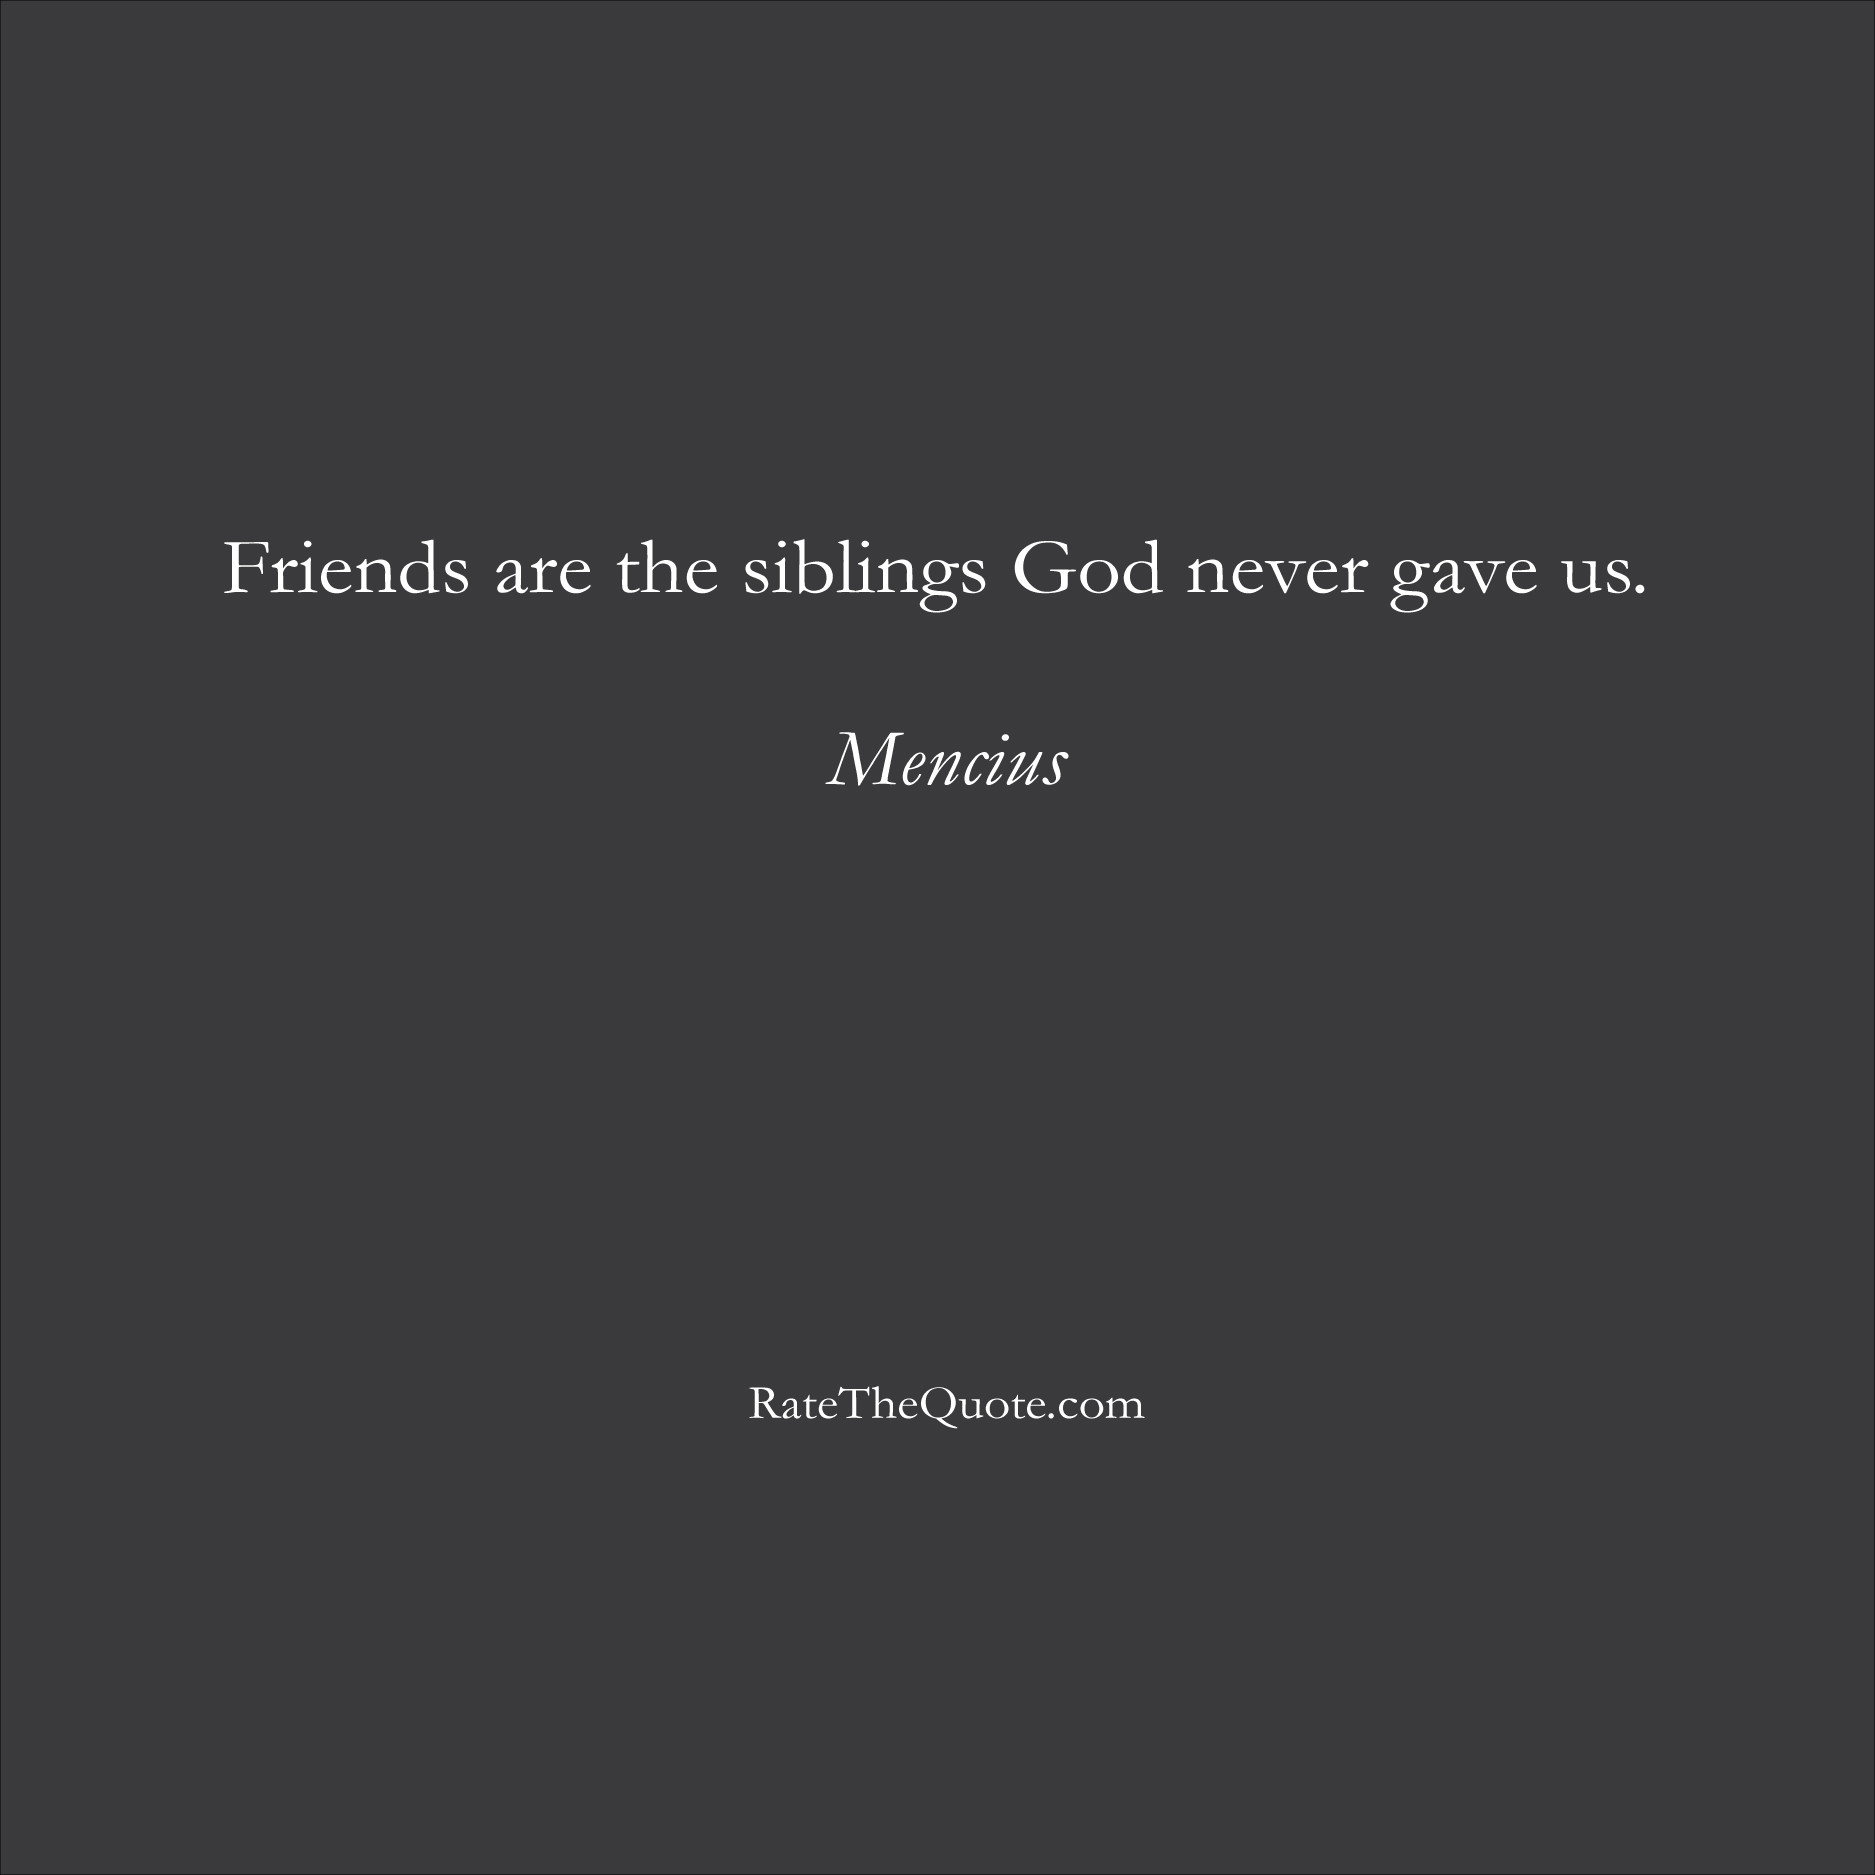 Friendship Quotes Friends are the siblings God never gave us. Mencius